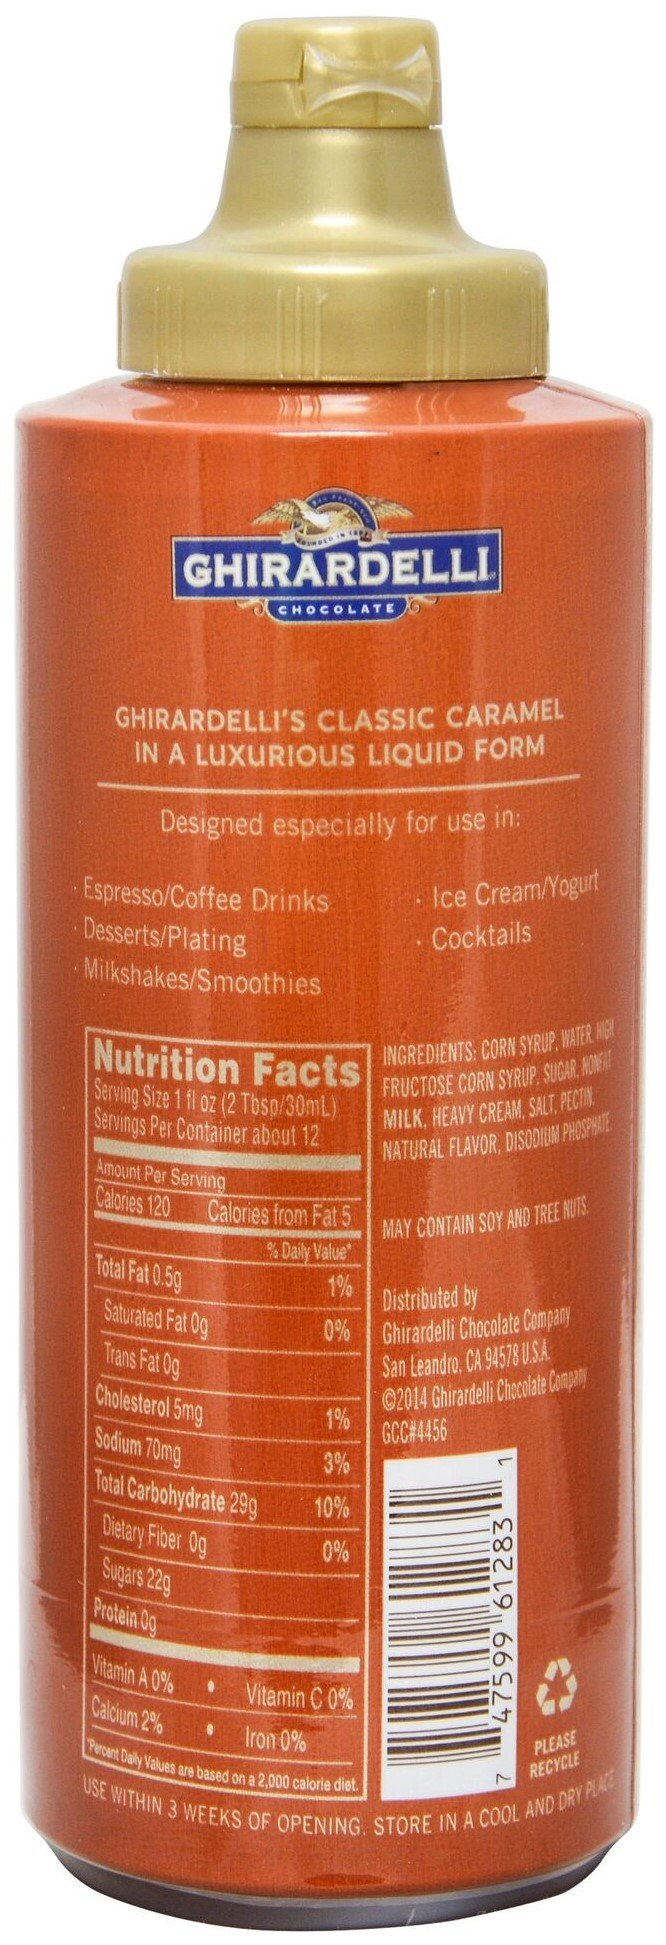 Ghirardelli - 16 Ounce Black Label, 16 Ounce Vanilla, 17 Ounce White, 17 Ounce Caramel, 17 Ounce Sea Salt Caramel Flavored Sauce (Set of 5) - with Limited Edition Measuring Spoon by Ghirardelli (Image #3)